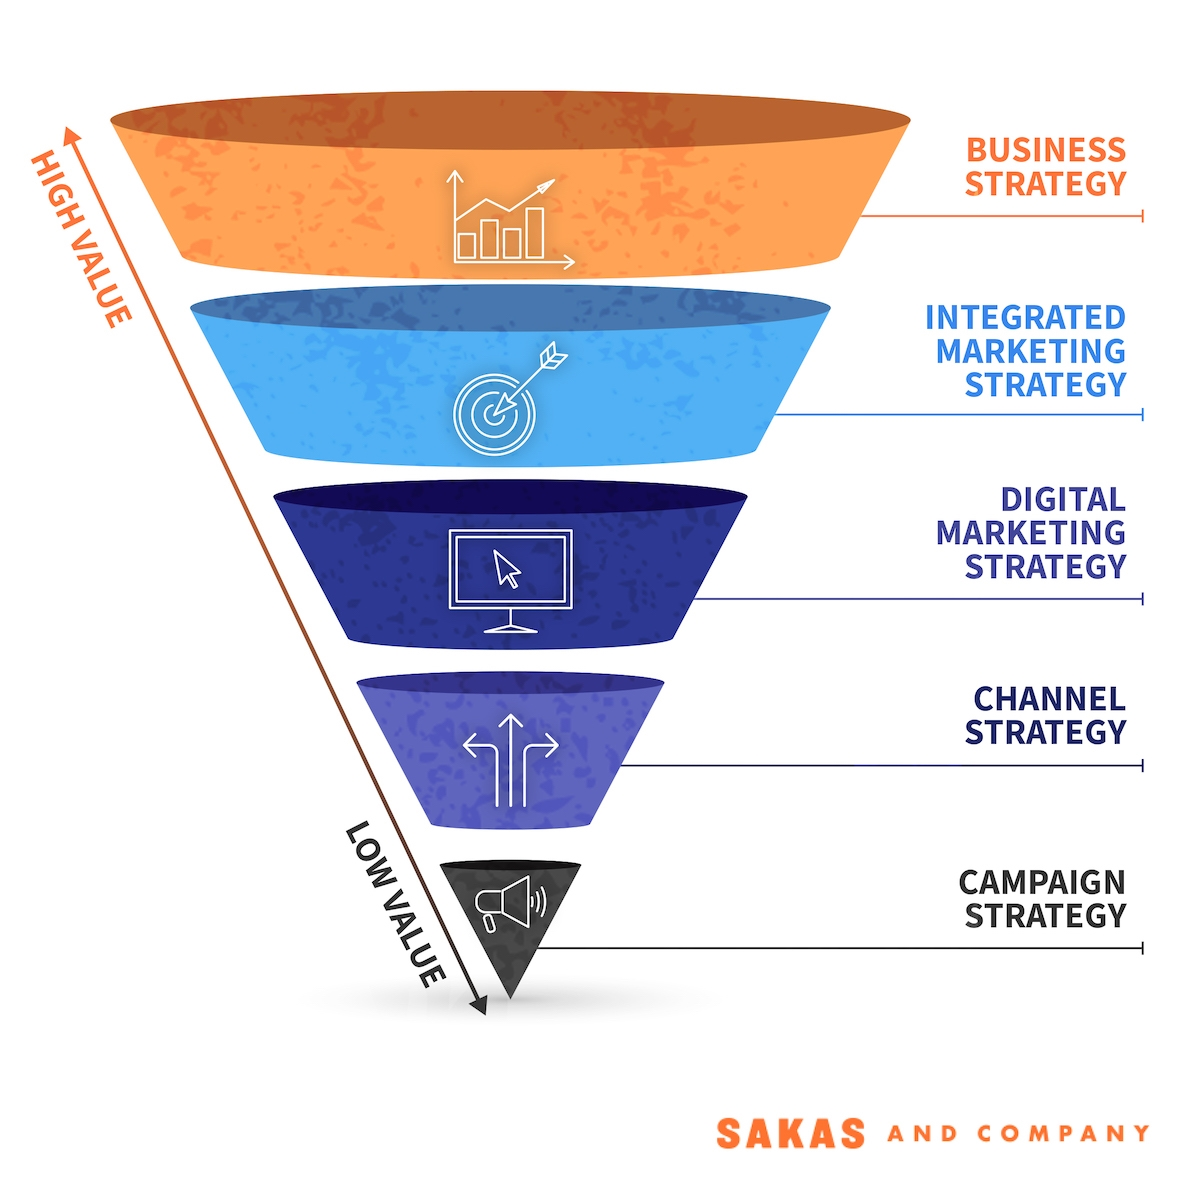 Move Your Agency Up-Market By Serving Higher-Value Strategy Tiers